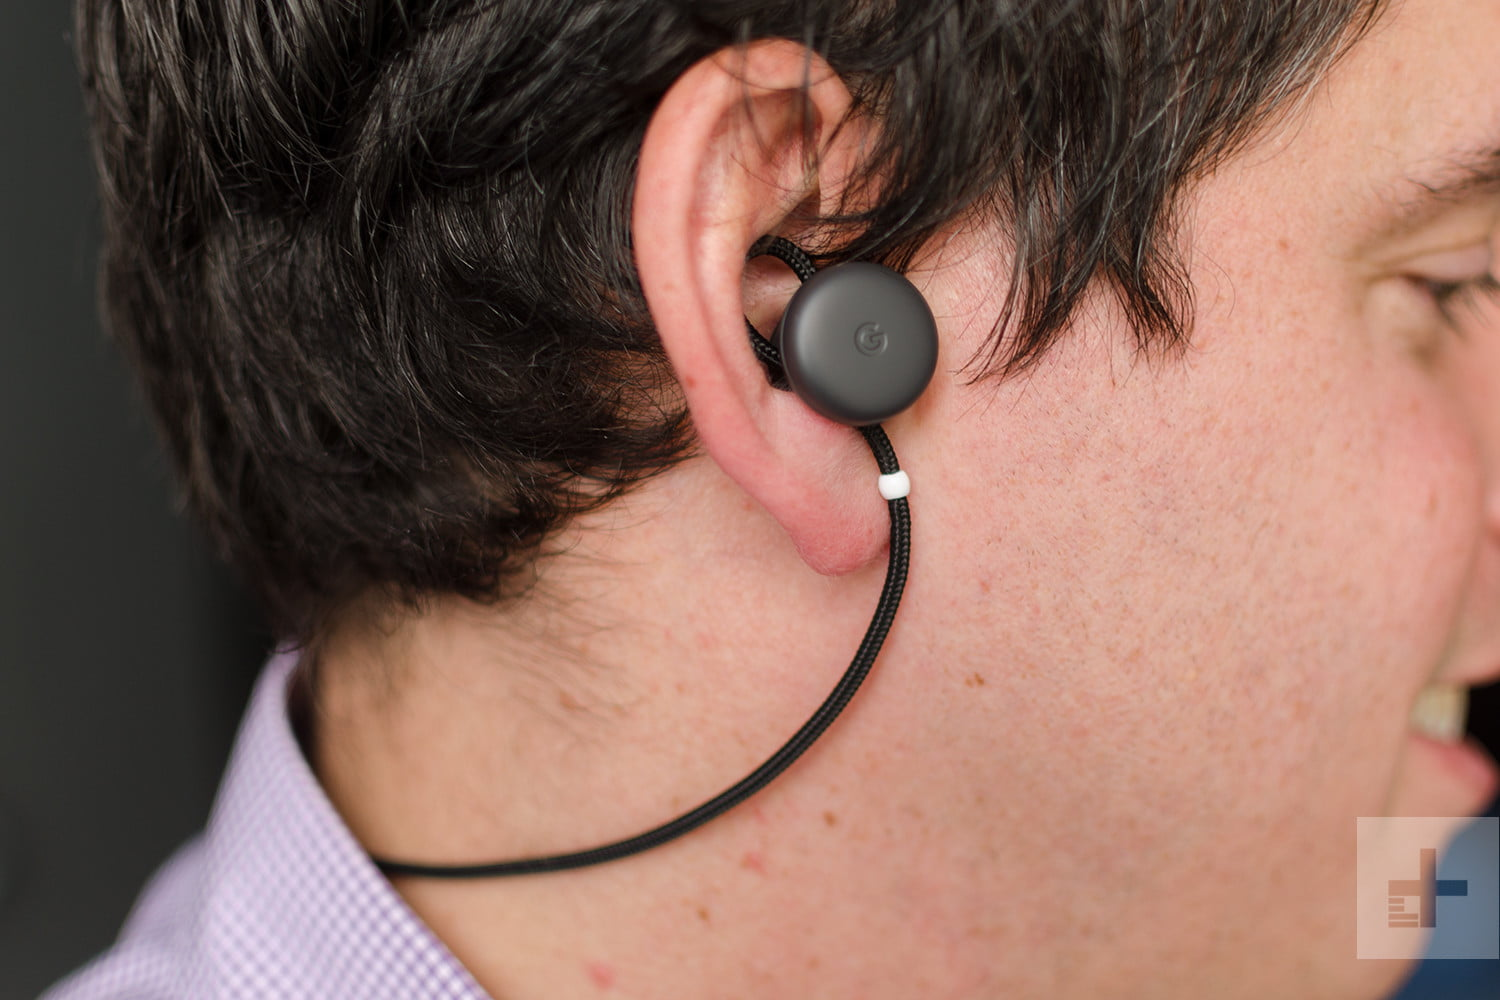 19b7d6f72ad Google Pixel Buds Review: AirPod Competition? Not Quite | Digital Trends